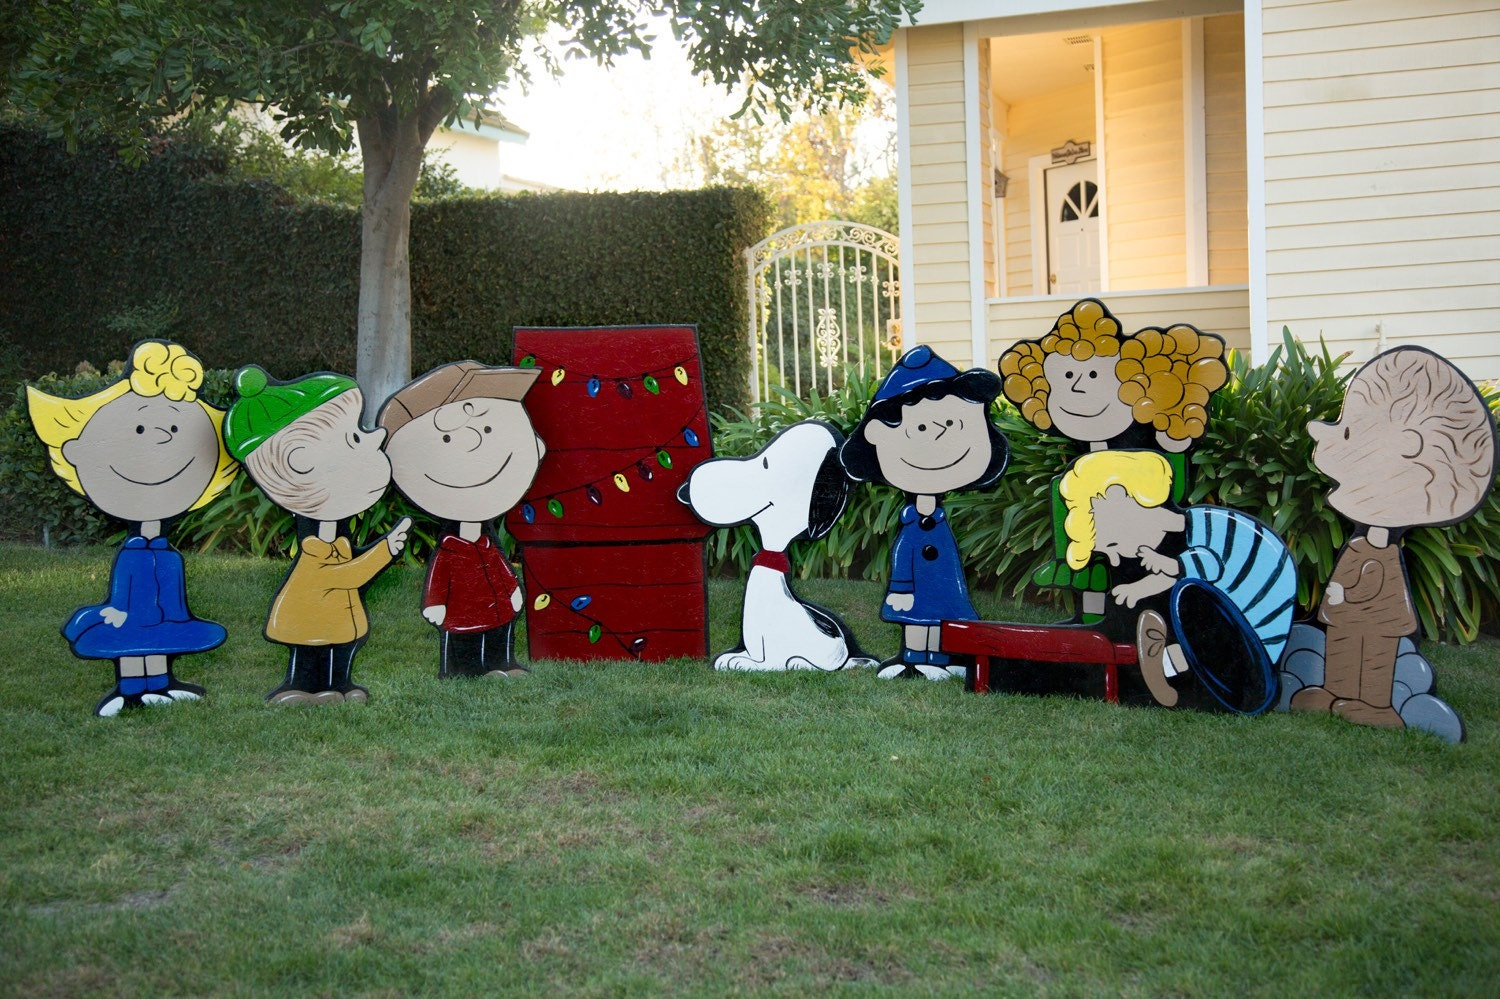 Charlie brown christmas lawn decorations for Holiday lawn decorations